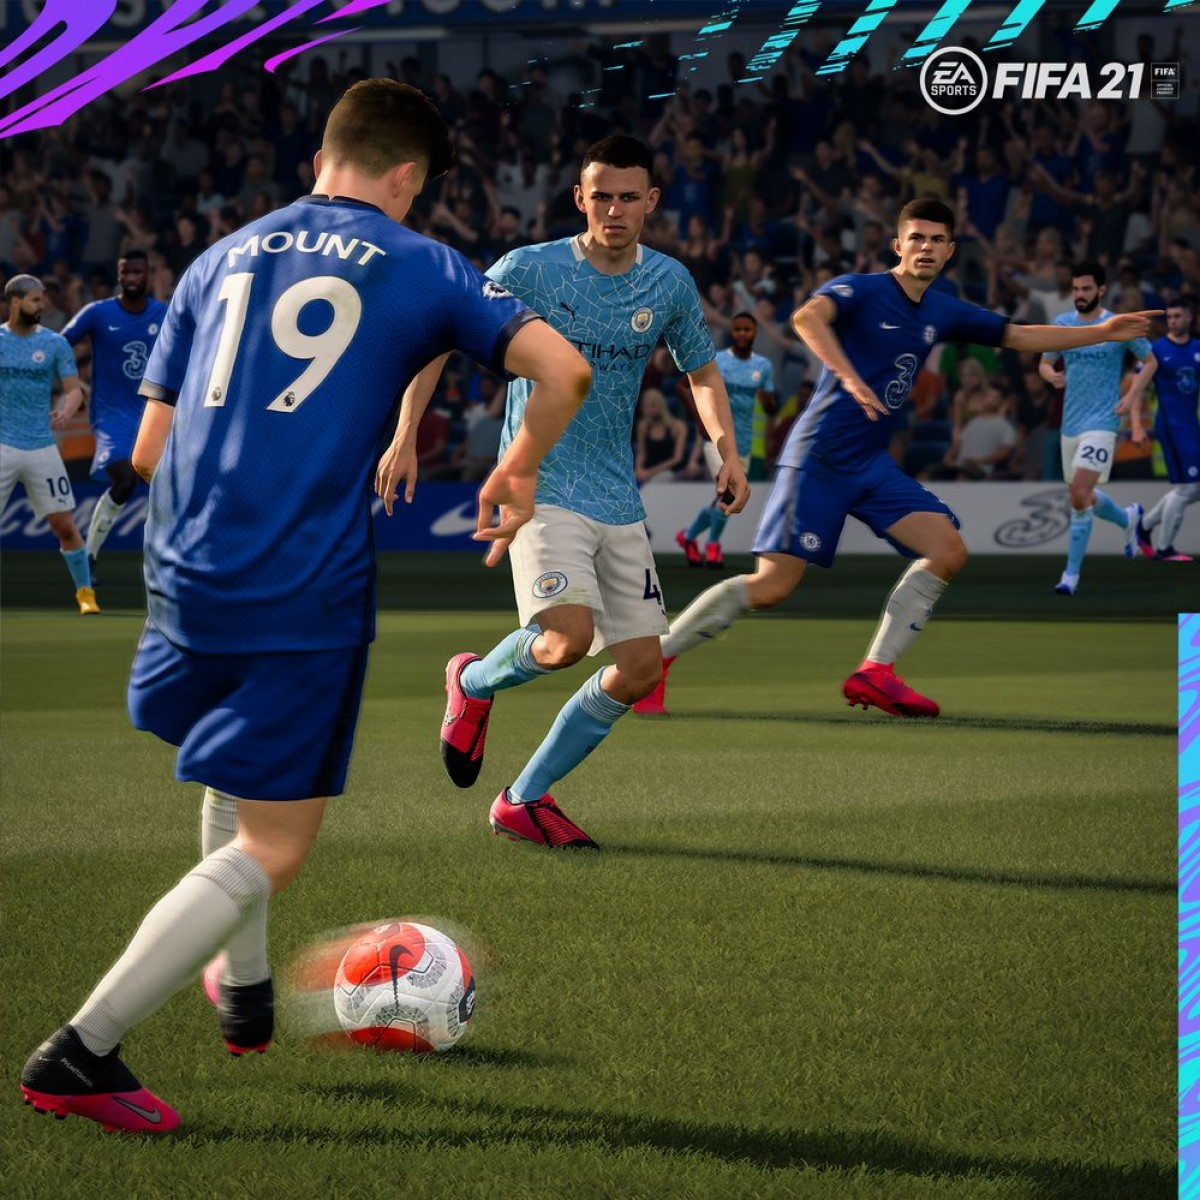 More than 100 games coming to Stadia in 2021, FIFA 21, Far Cry 6 and more